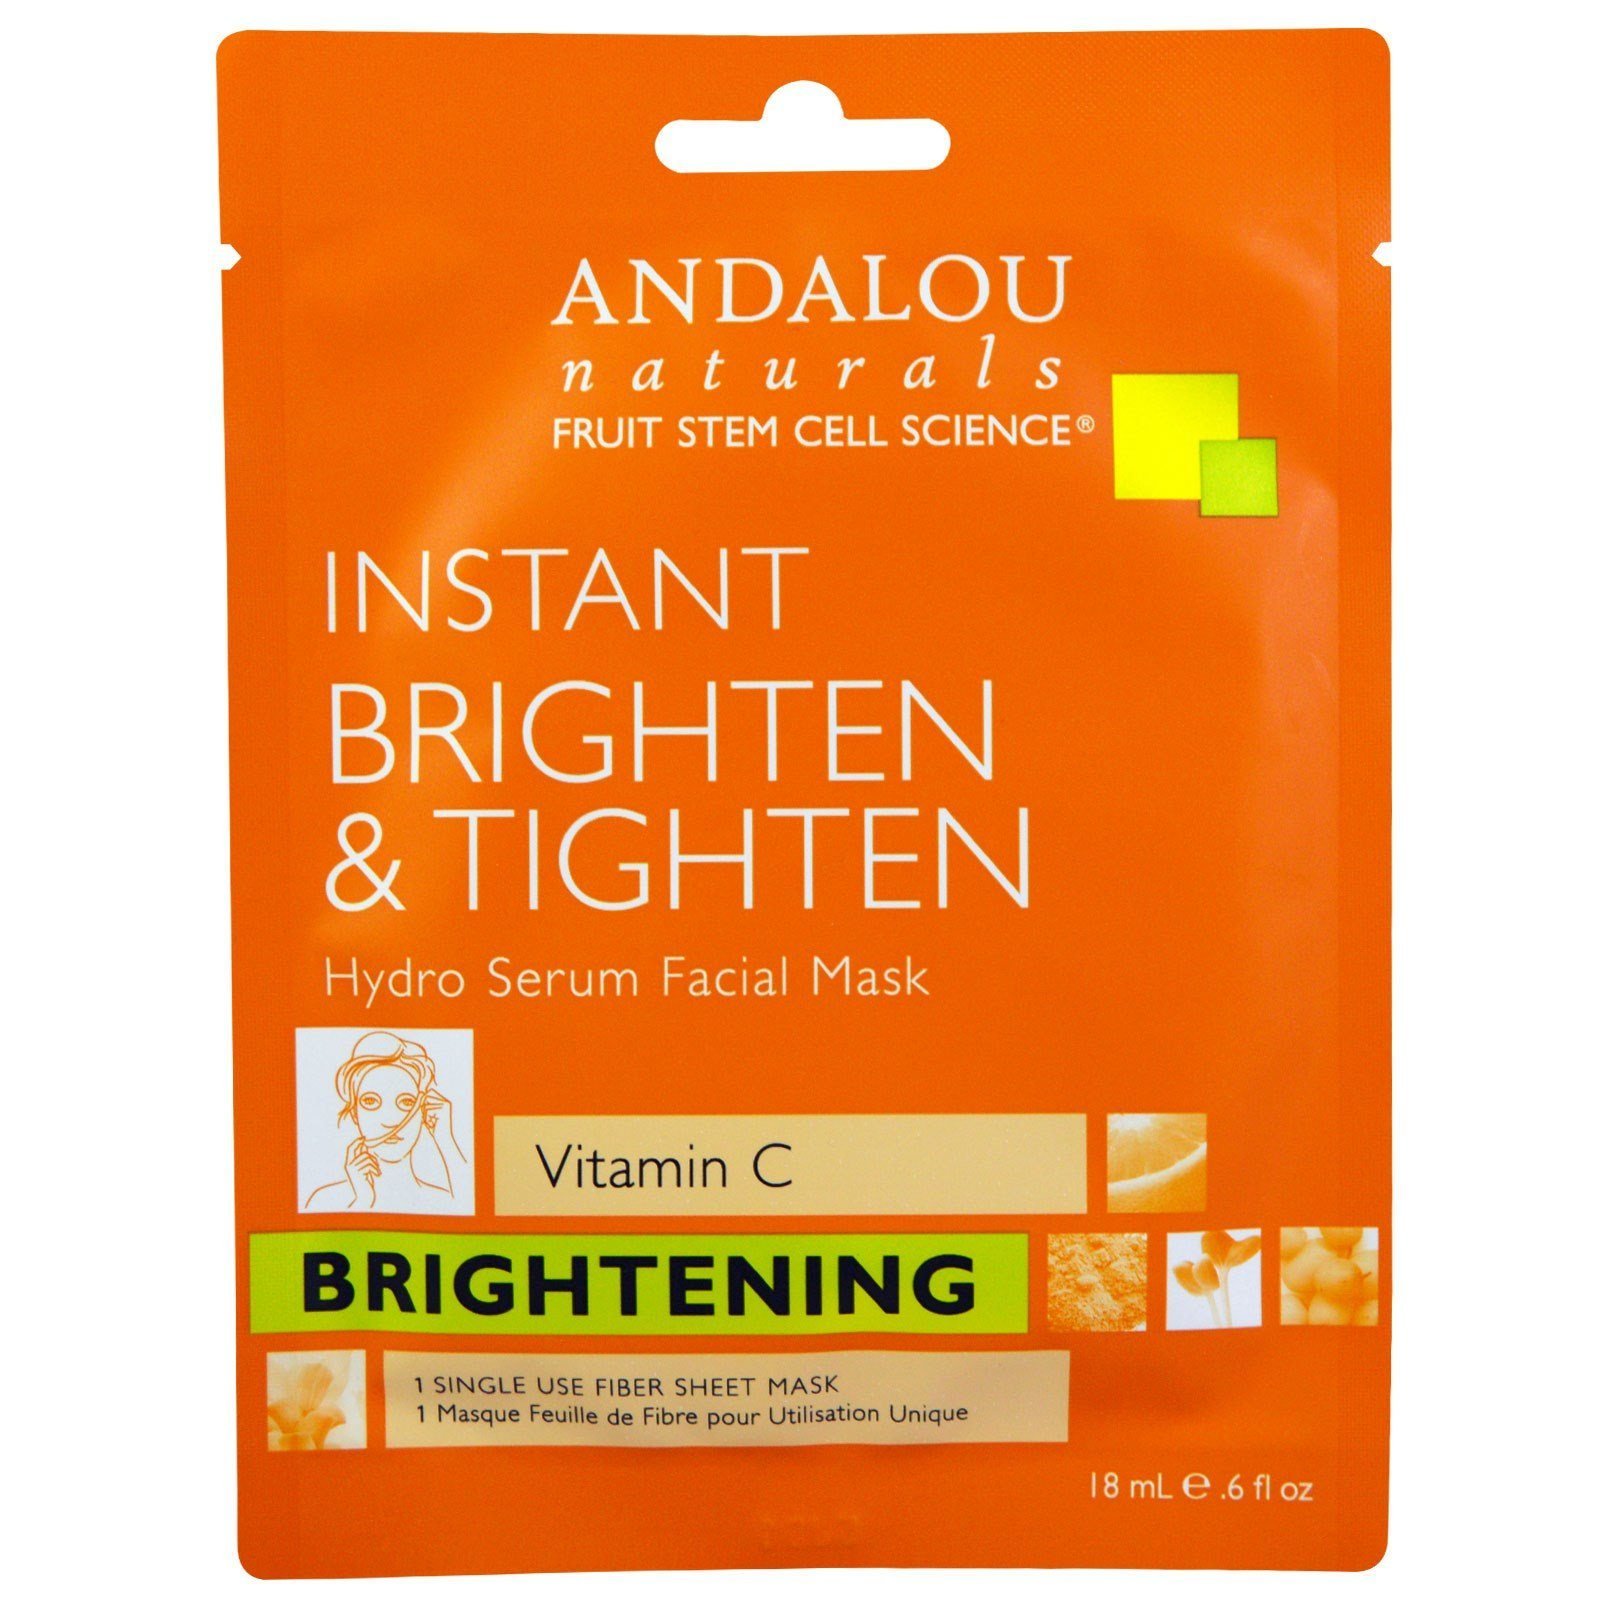 Personal Care - Andalou Naturals - Facial Sheet - Brightening, 18ML